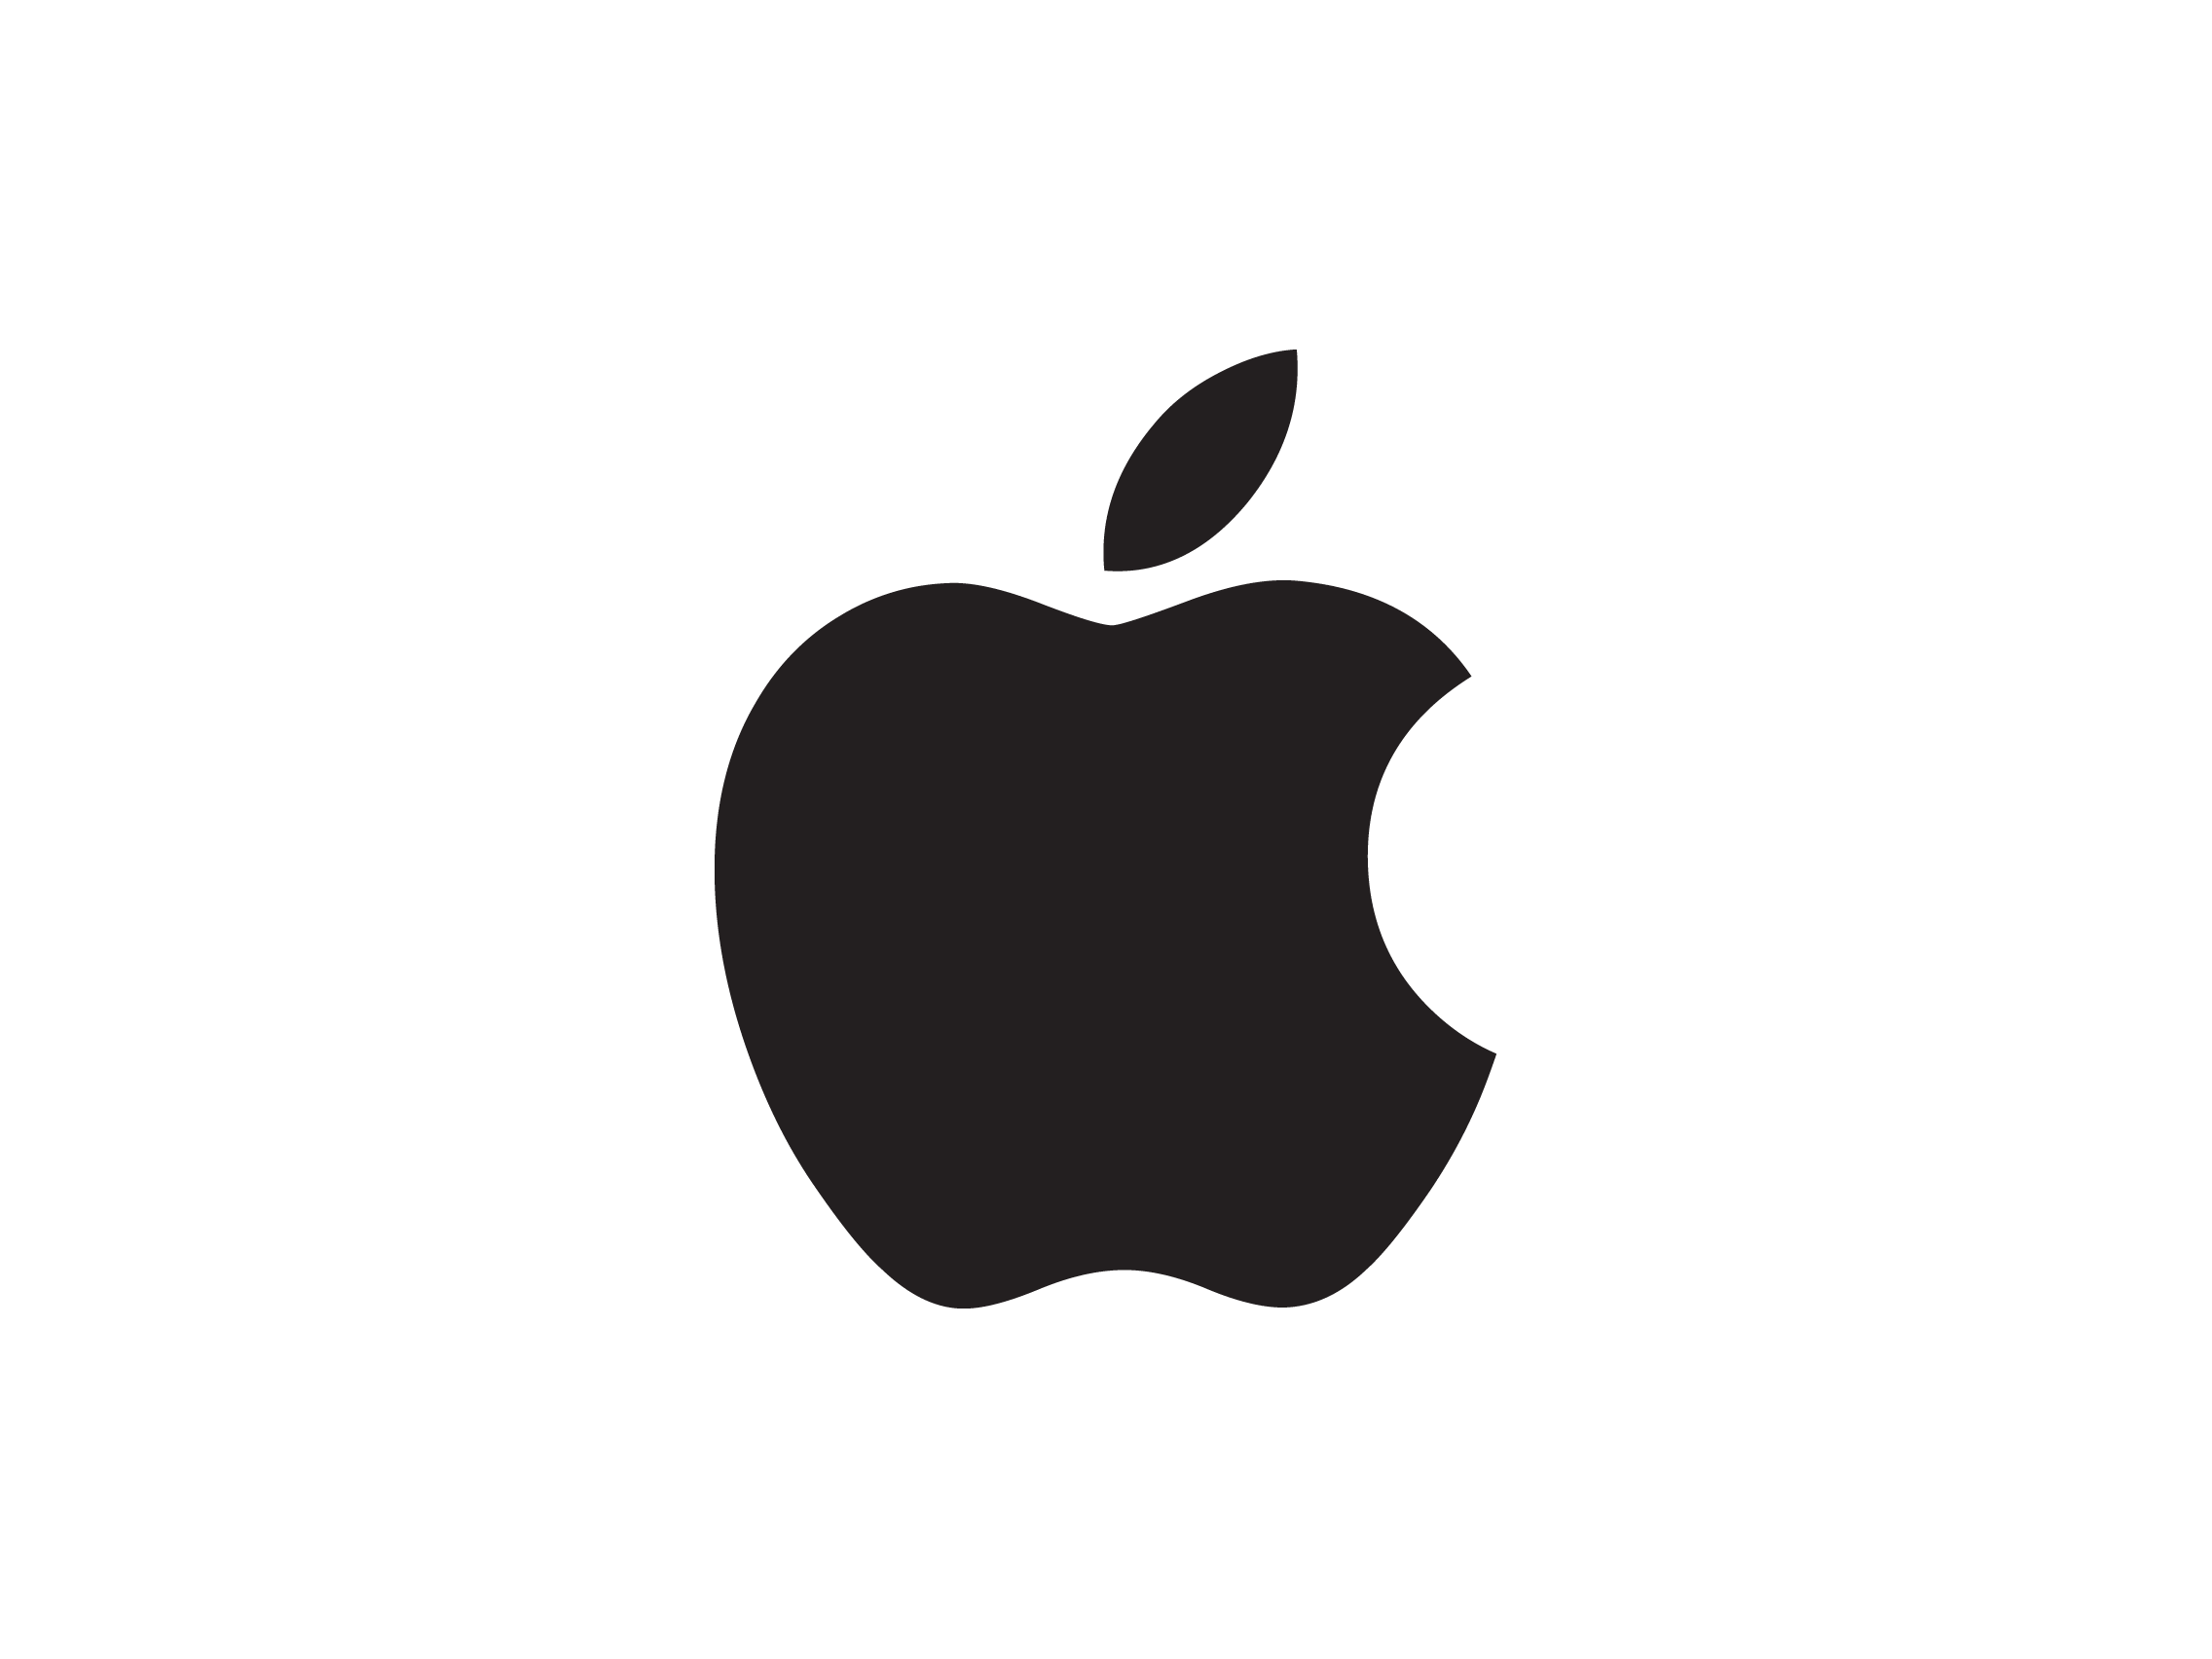 苹果(Apple Inc.)